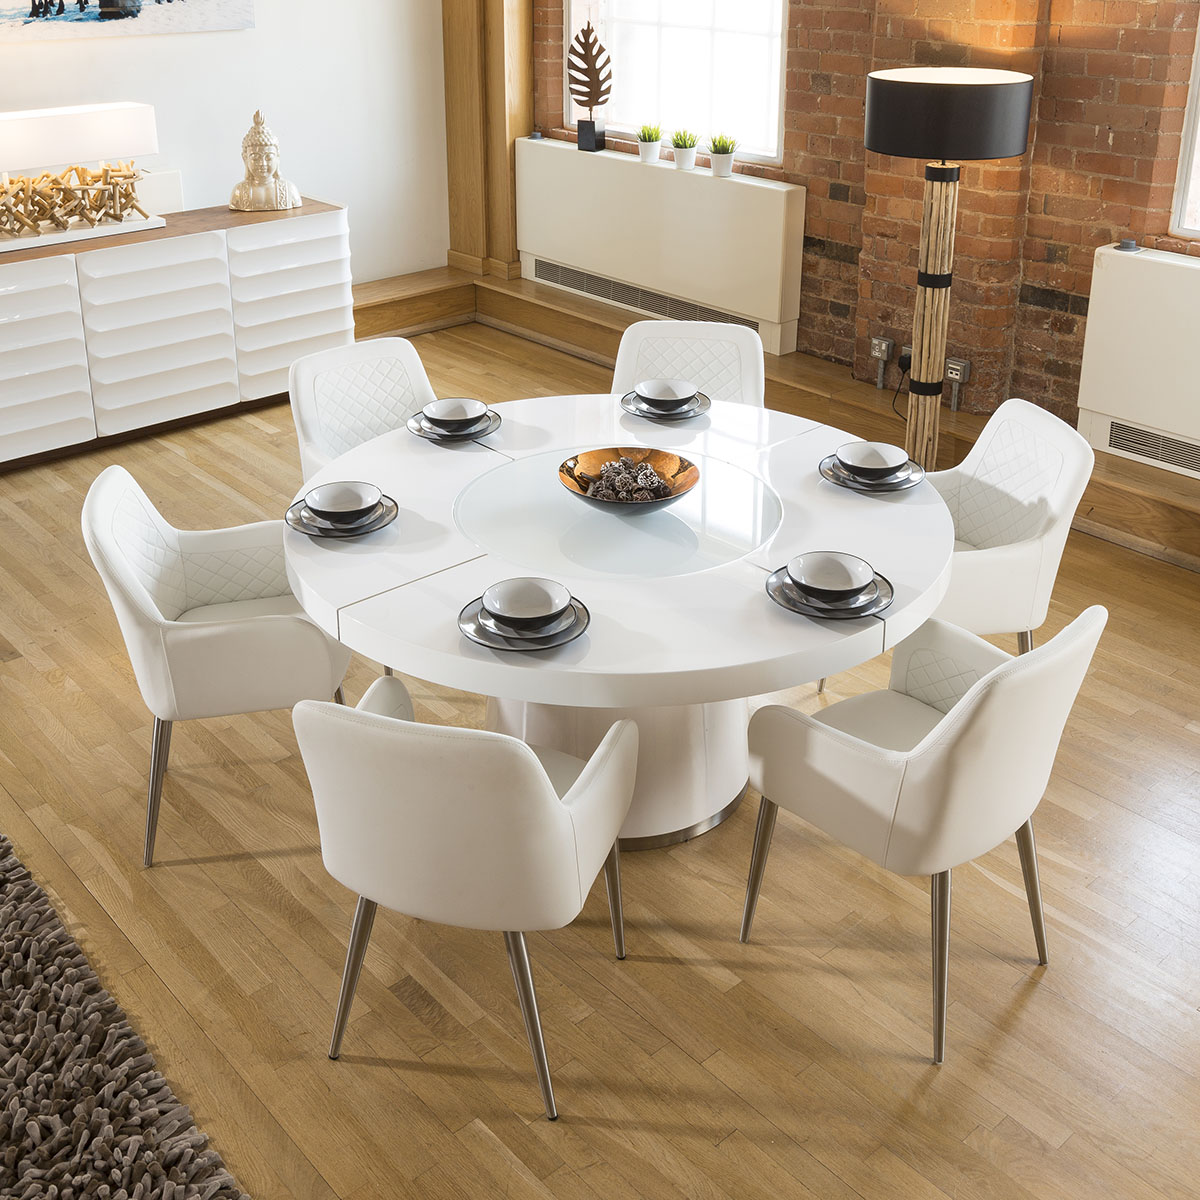 b5c24af56af7 Sentinel Large Round White Gloss Dining Table Lazy Susan